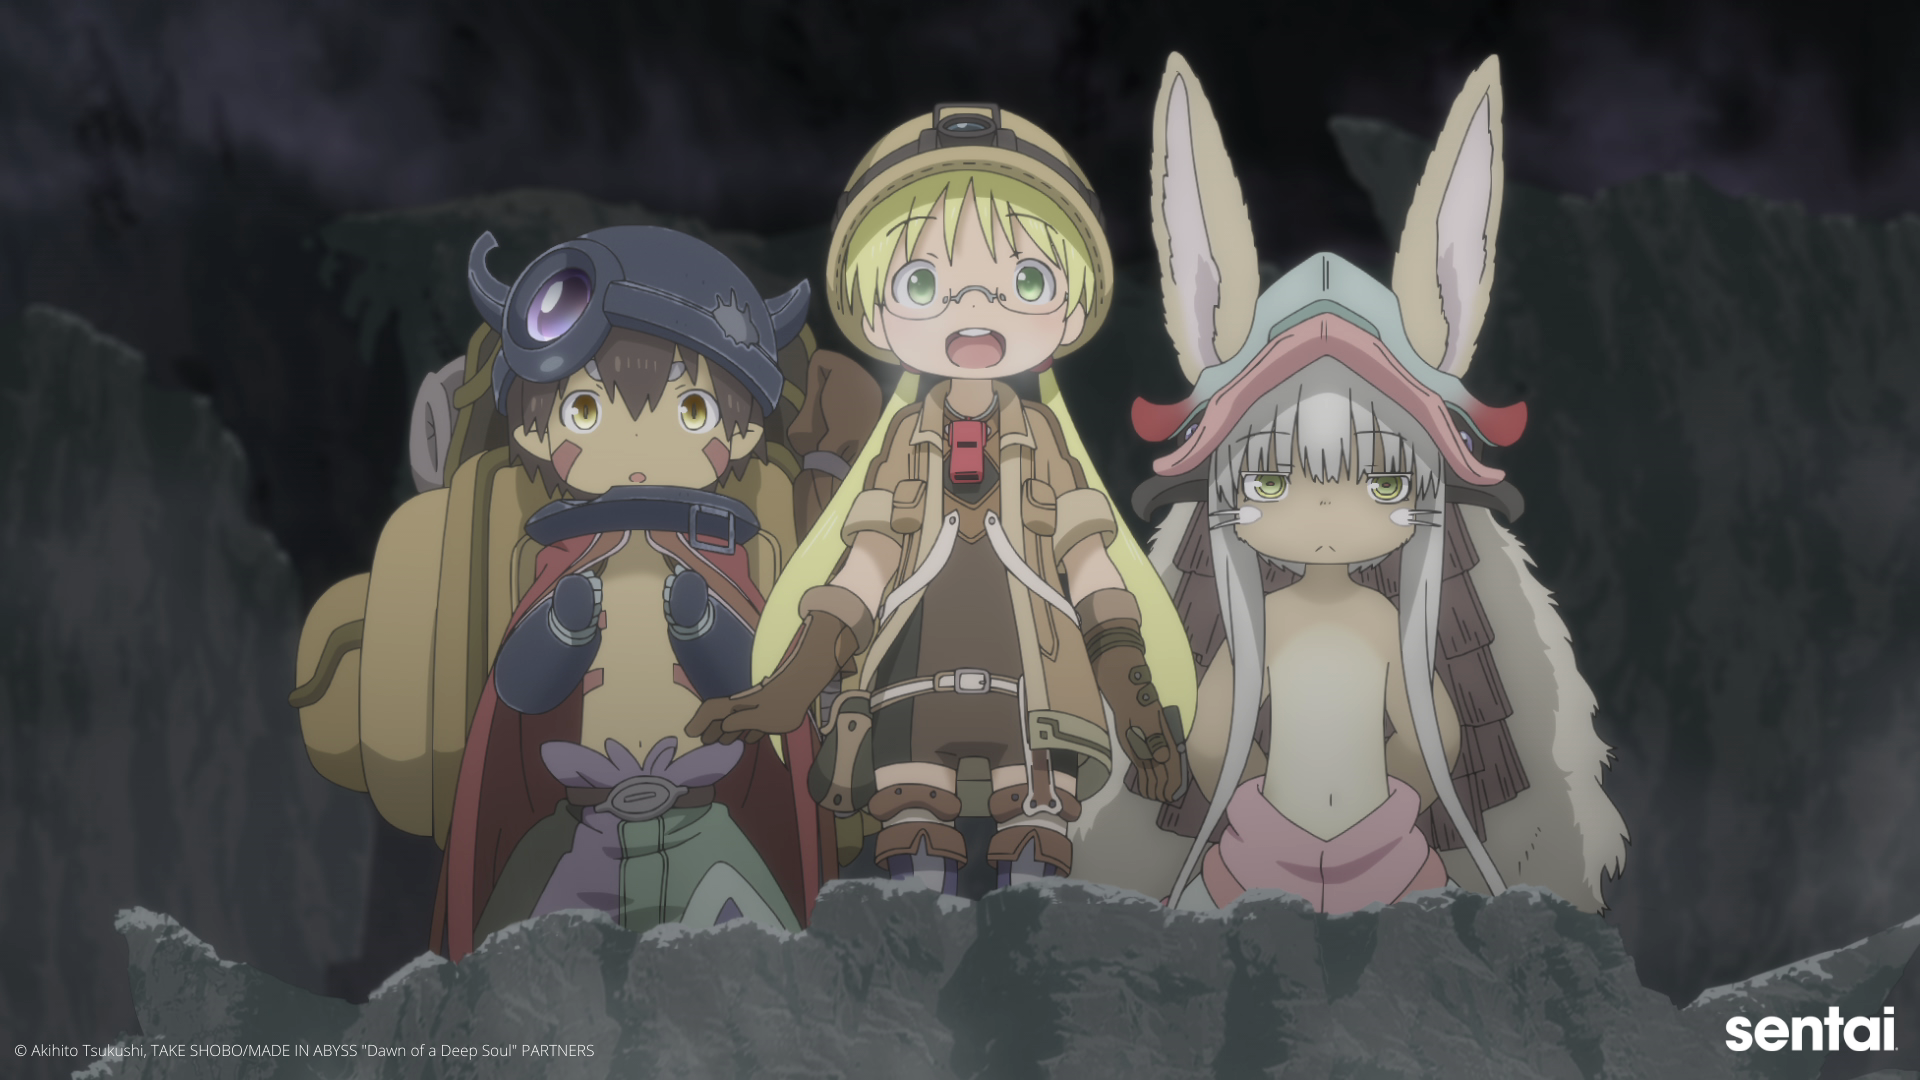 © Akihito Tsukushi, TAKE SHOBO_MADE IN ABYSS _Dawn of a Deep Soul_ PARTNERS-6